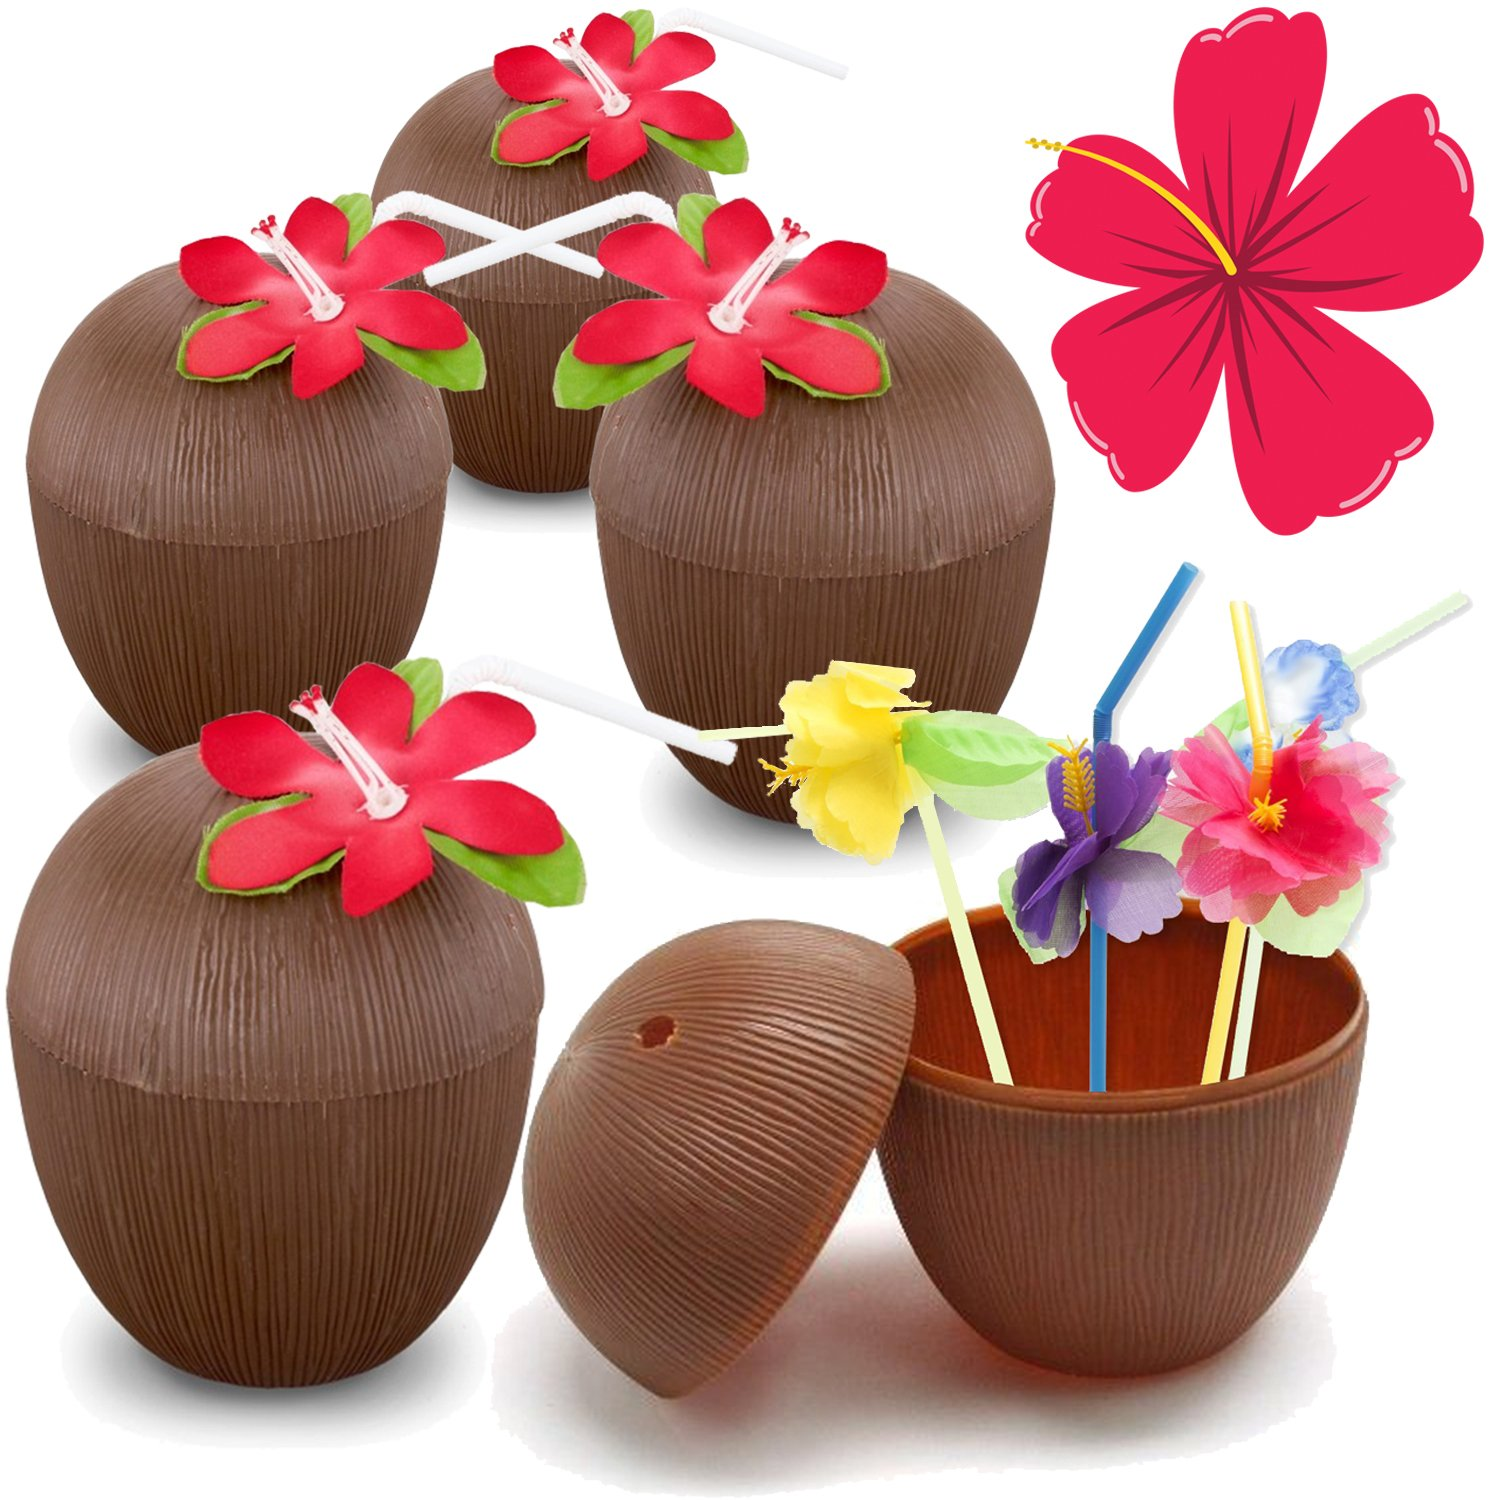 Plastic Coconut Cups For Fun Hawaiian Luau Children's Parties – Bulk 12 Pack – Comes With Straw And Flower – Tiki And Beach Theme Party Supplies (1 Dozen)